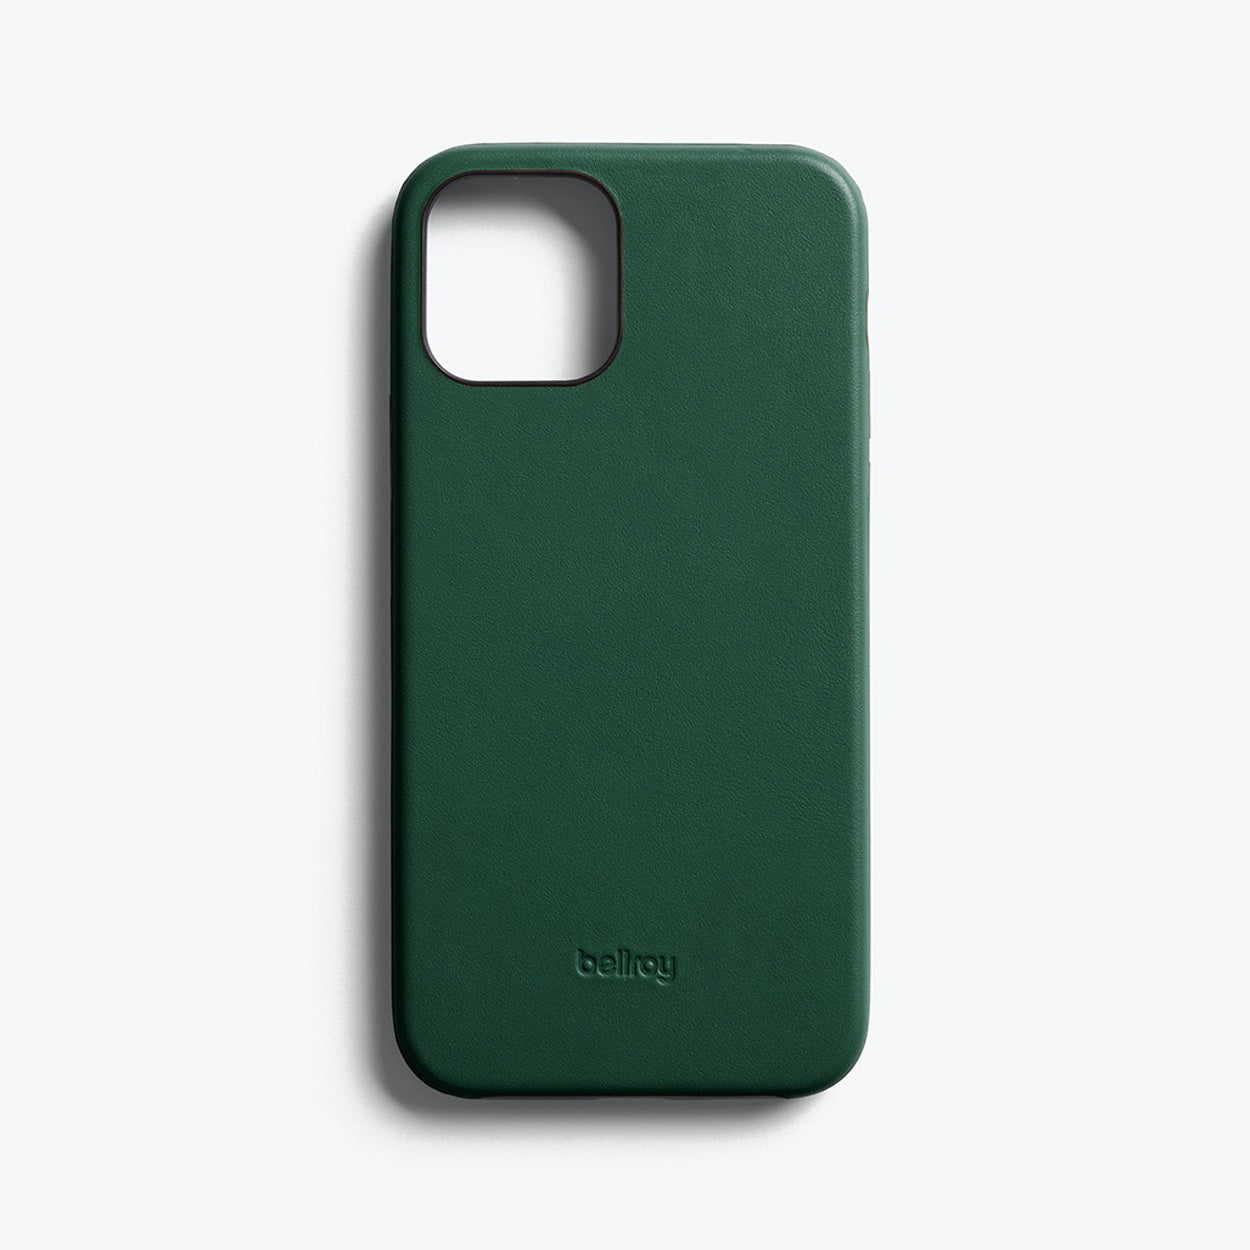 Bellroy Slim Genuine Leather Case For iPhone iPhone 12 mini - RACING GREEN